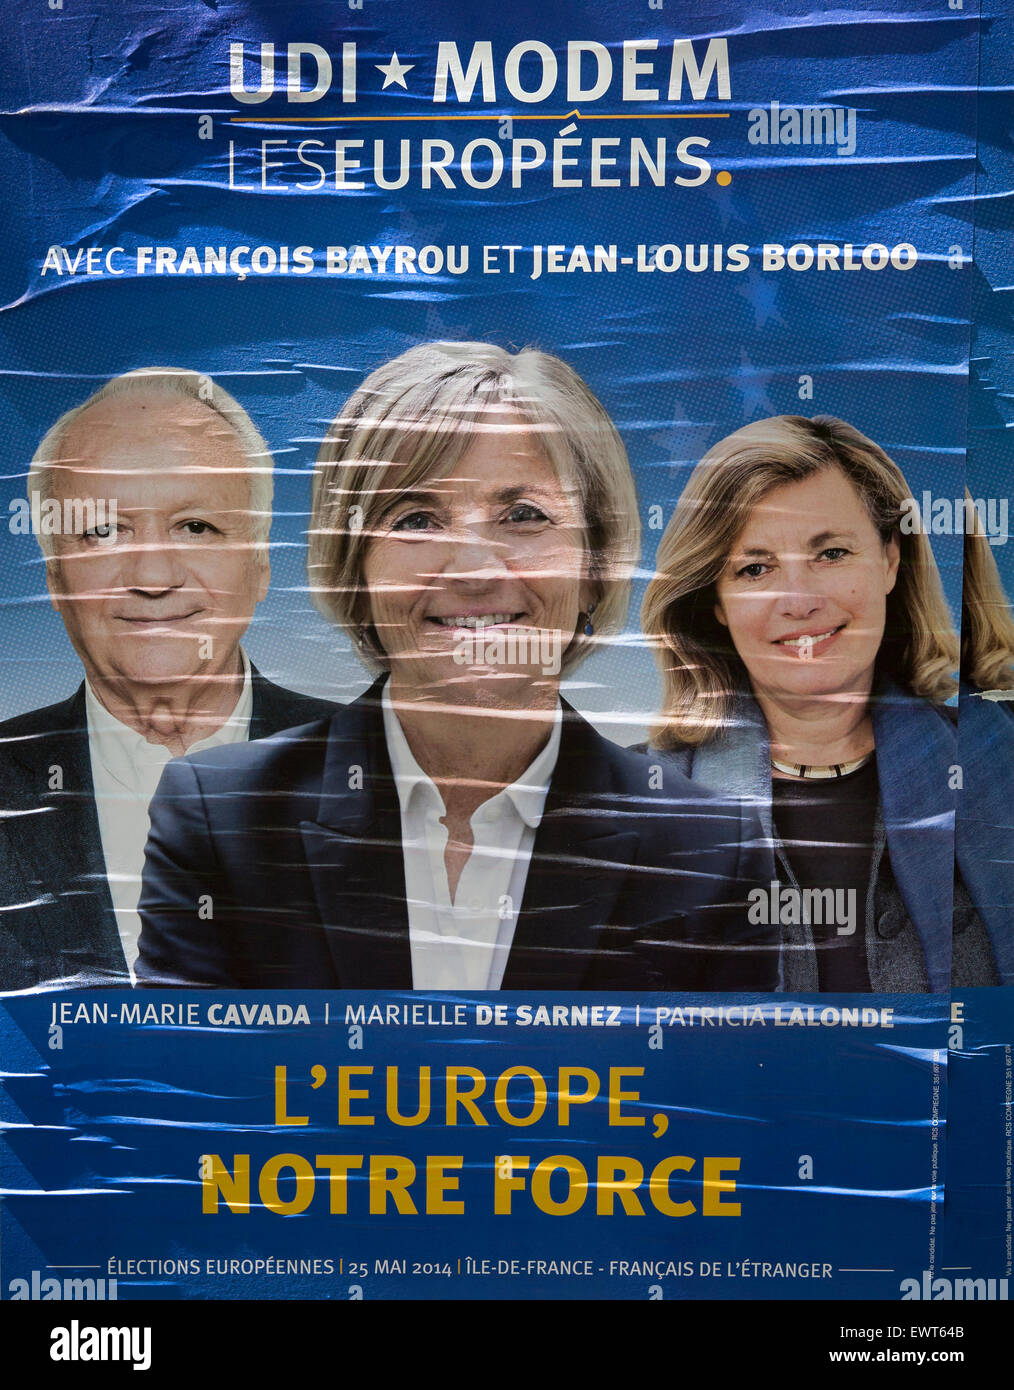 European Parliament election poster for French candidates Jean-Marie Cavade, Marielle De Sarnez, and Patricia LaLonde - Stock Image